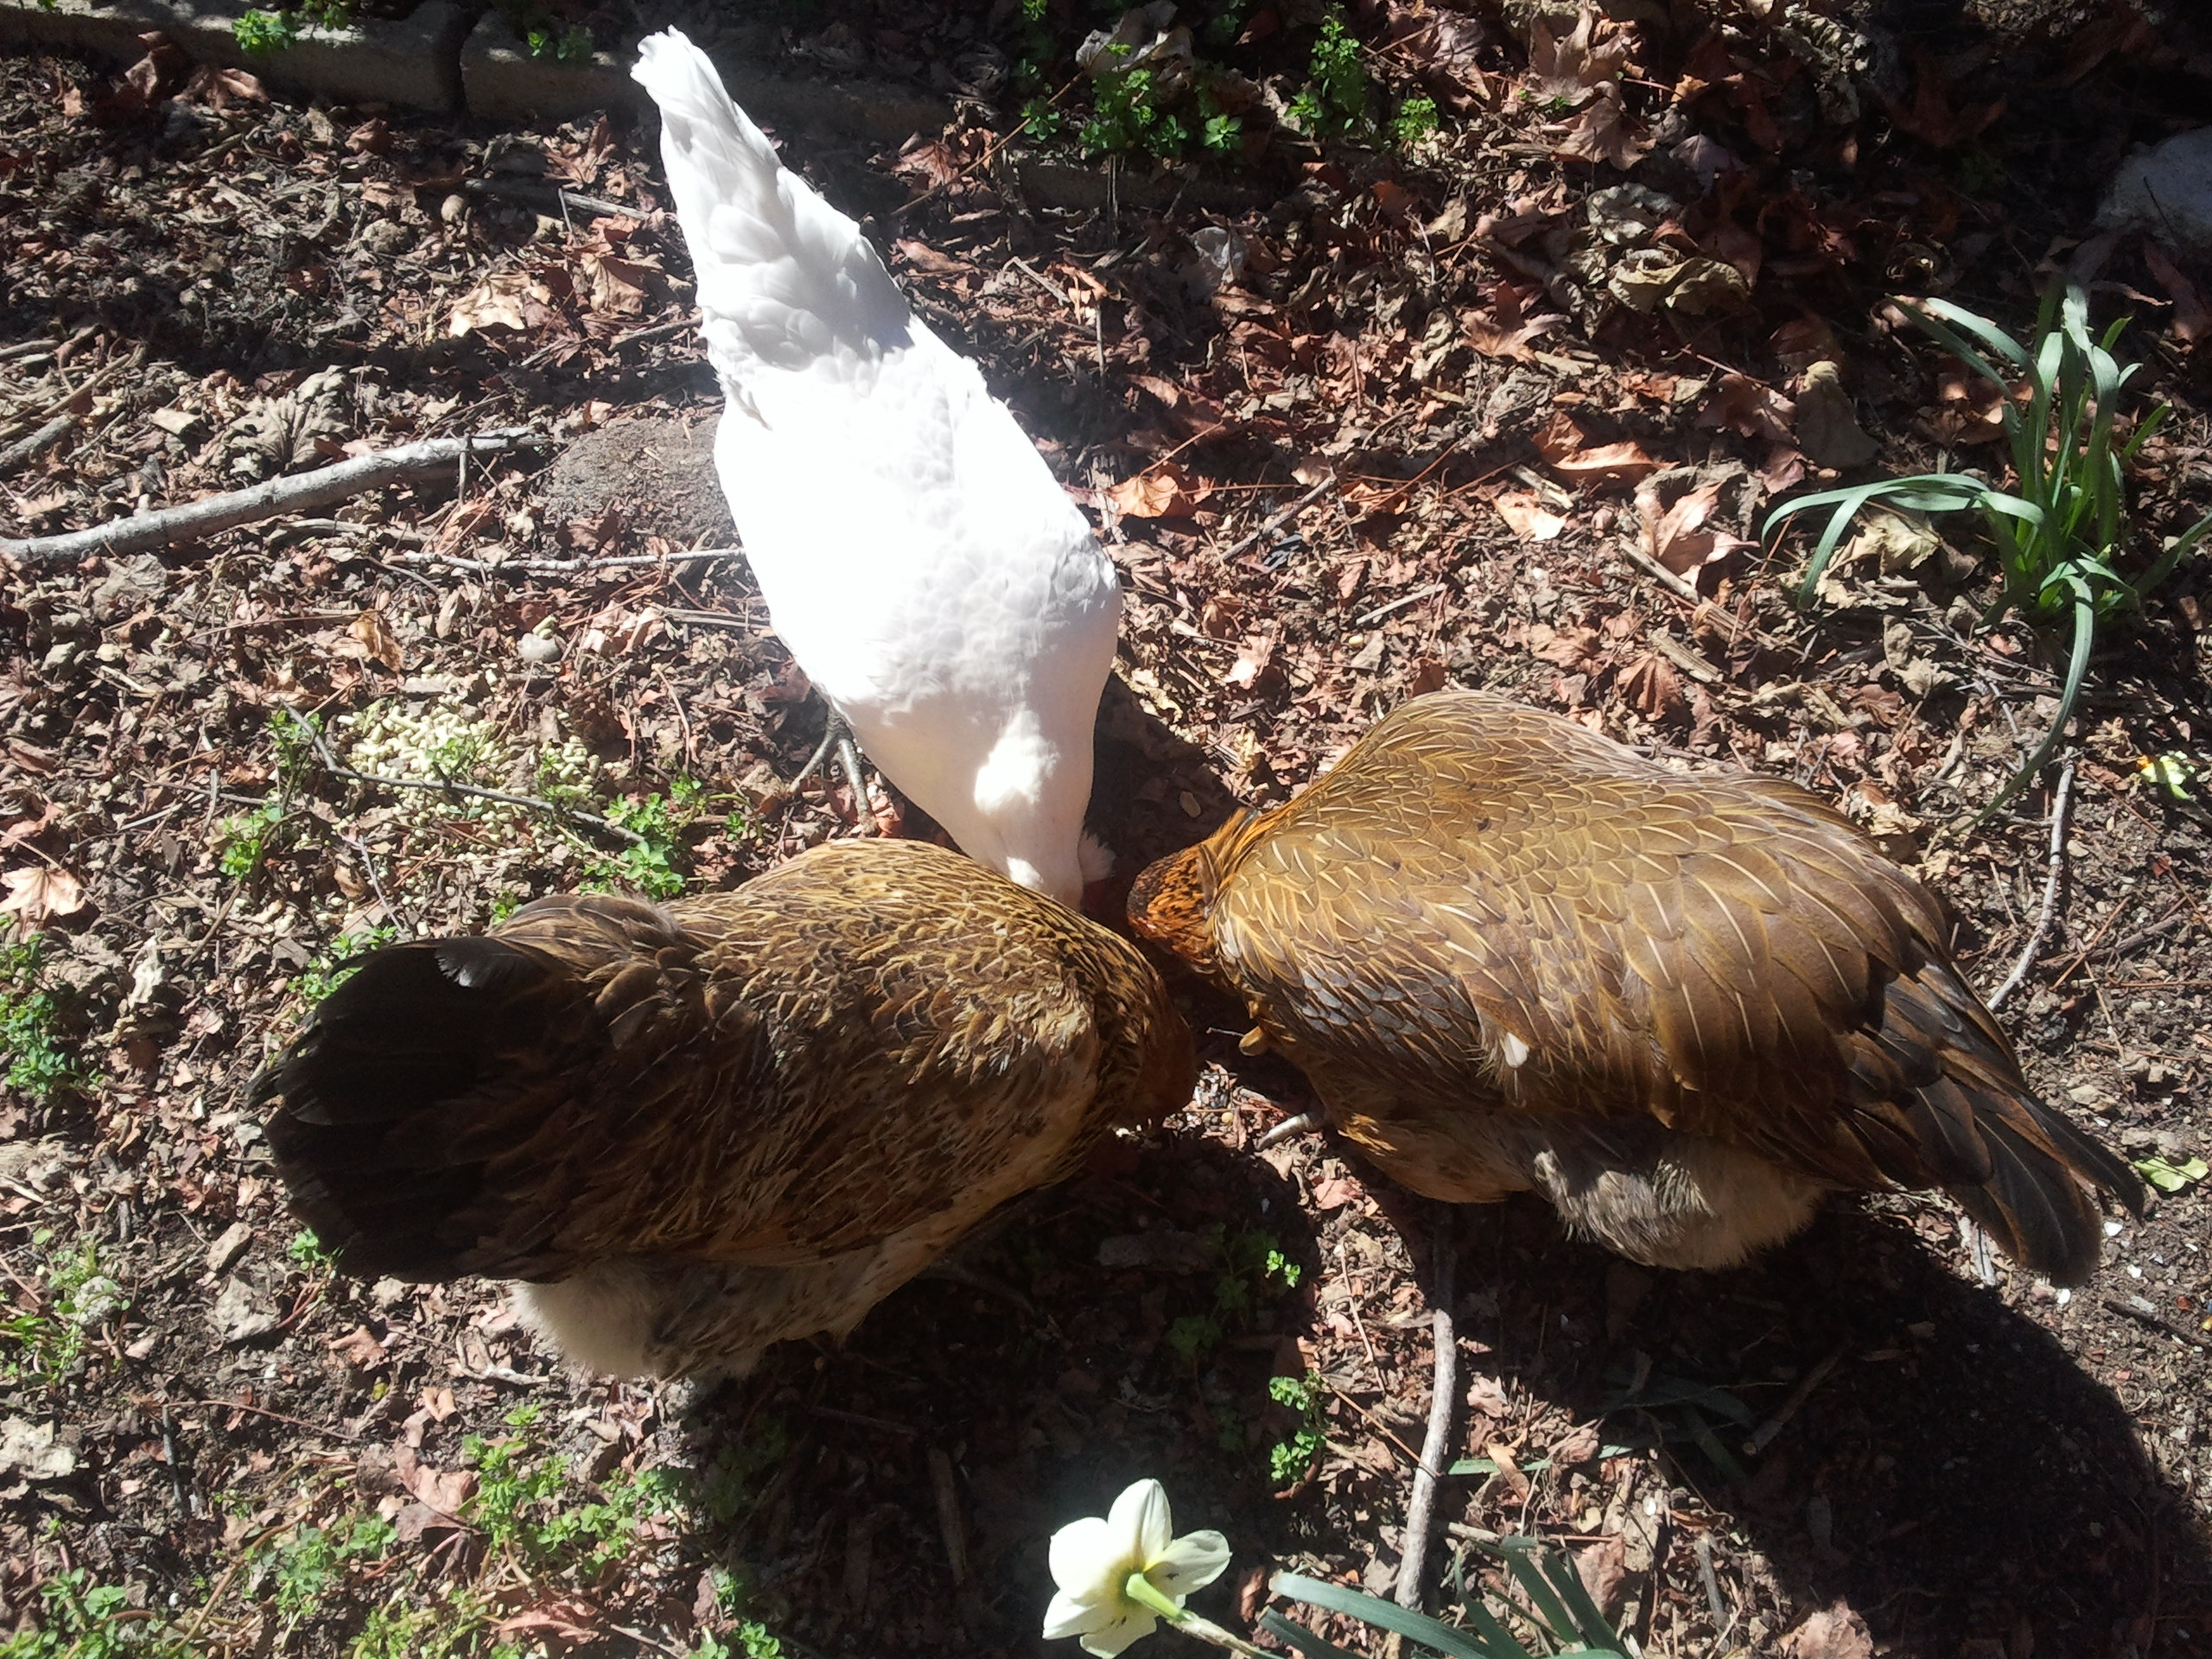 Backyard Farming Update Part 1: How We Got Our Chickens